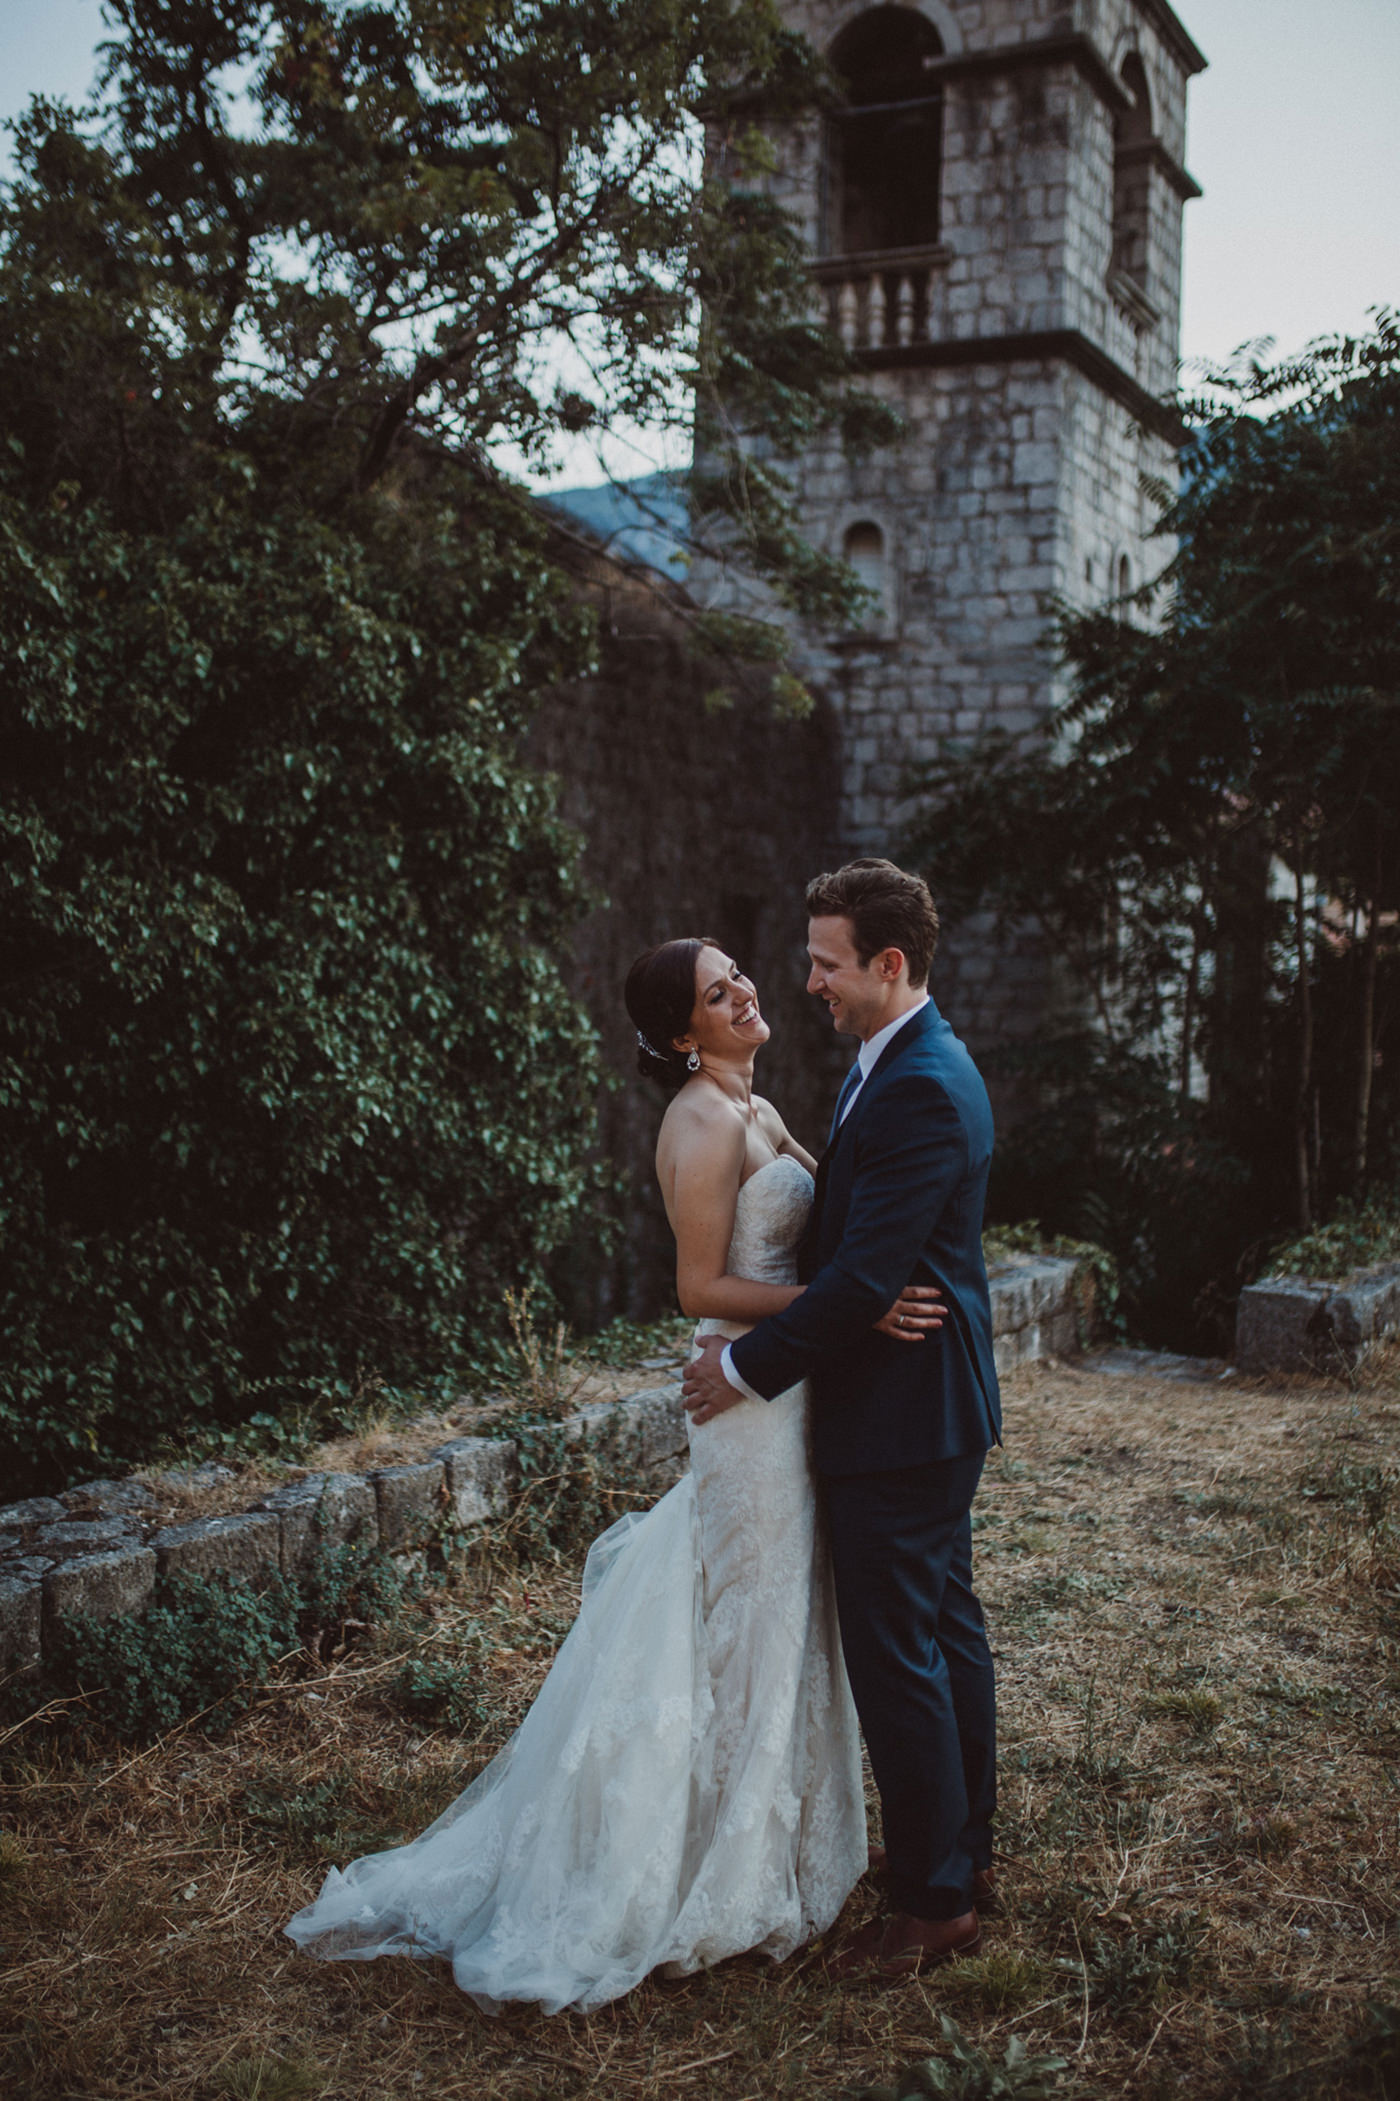 irena-ryan-destination-wedding-photographer-montenegro-kotor-0134